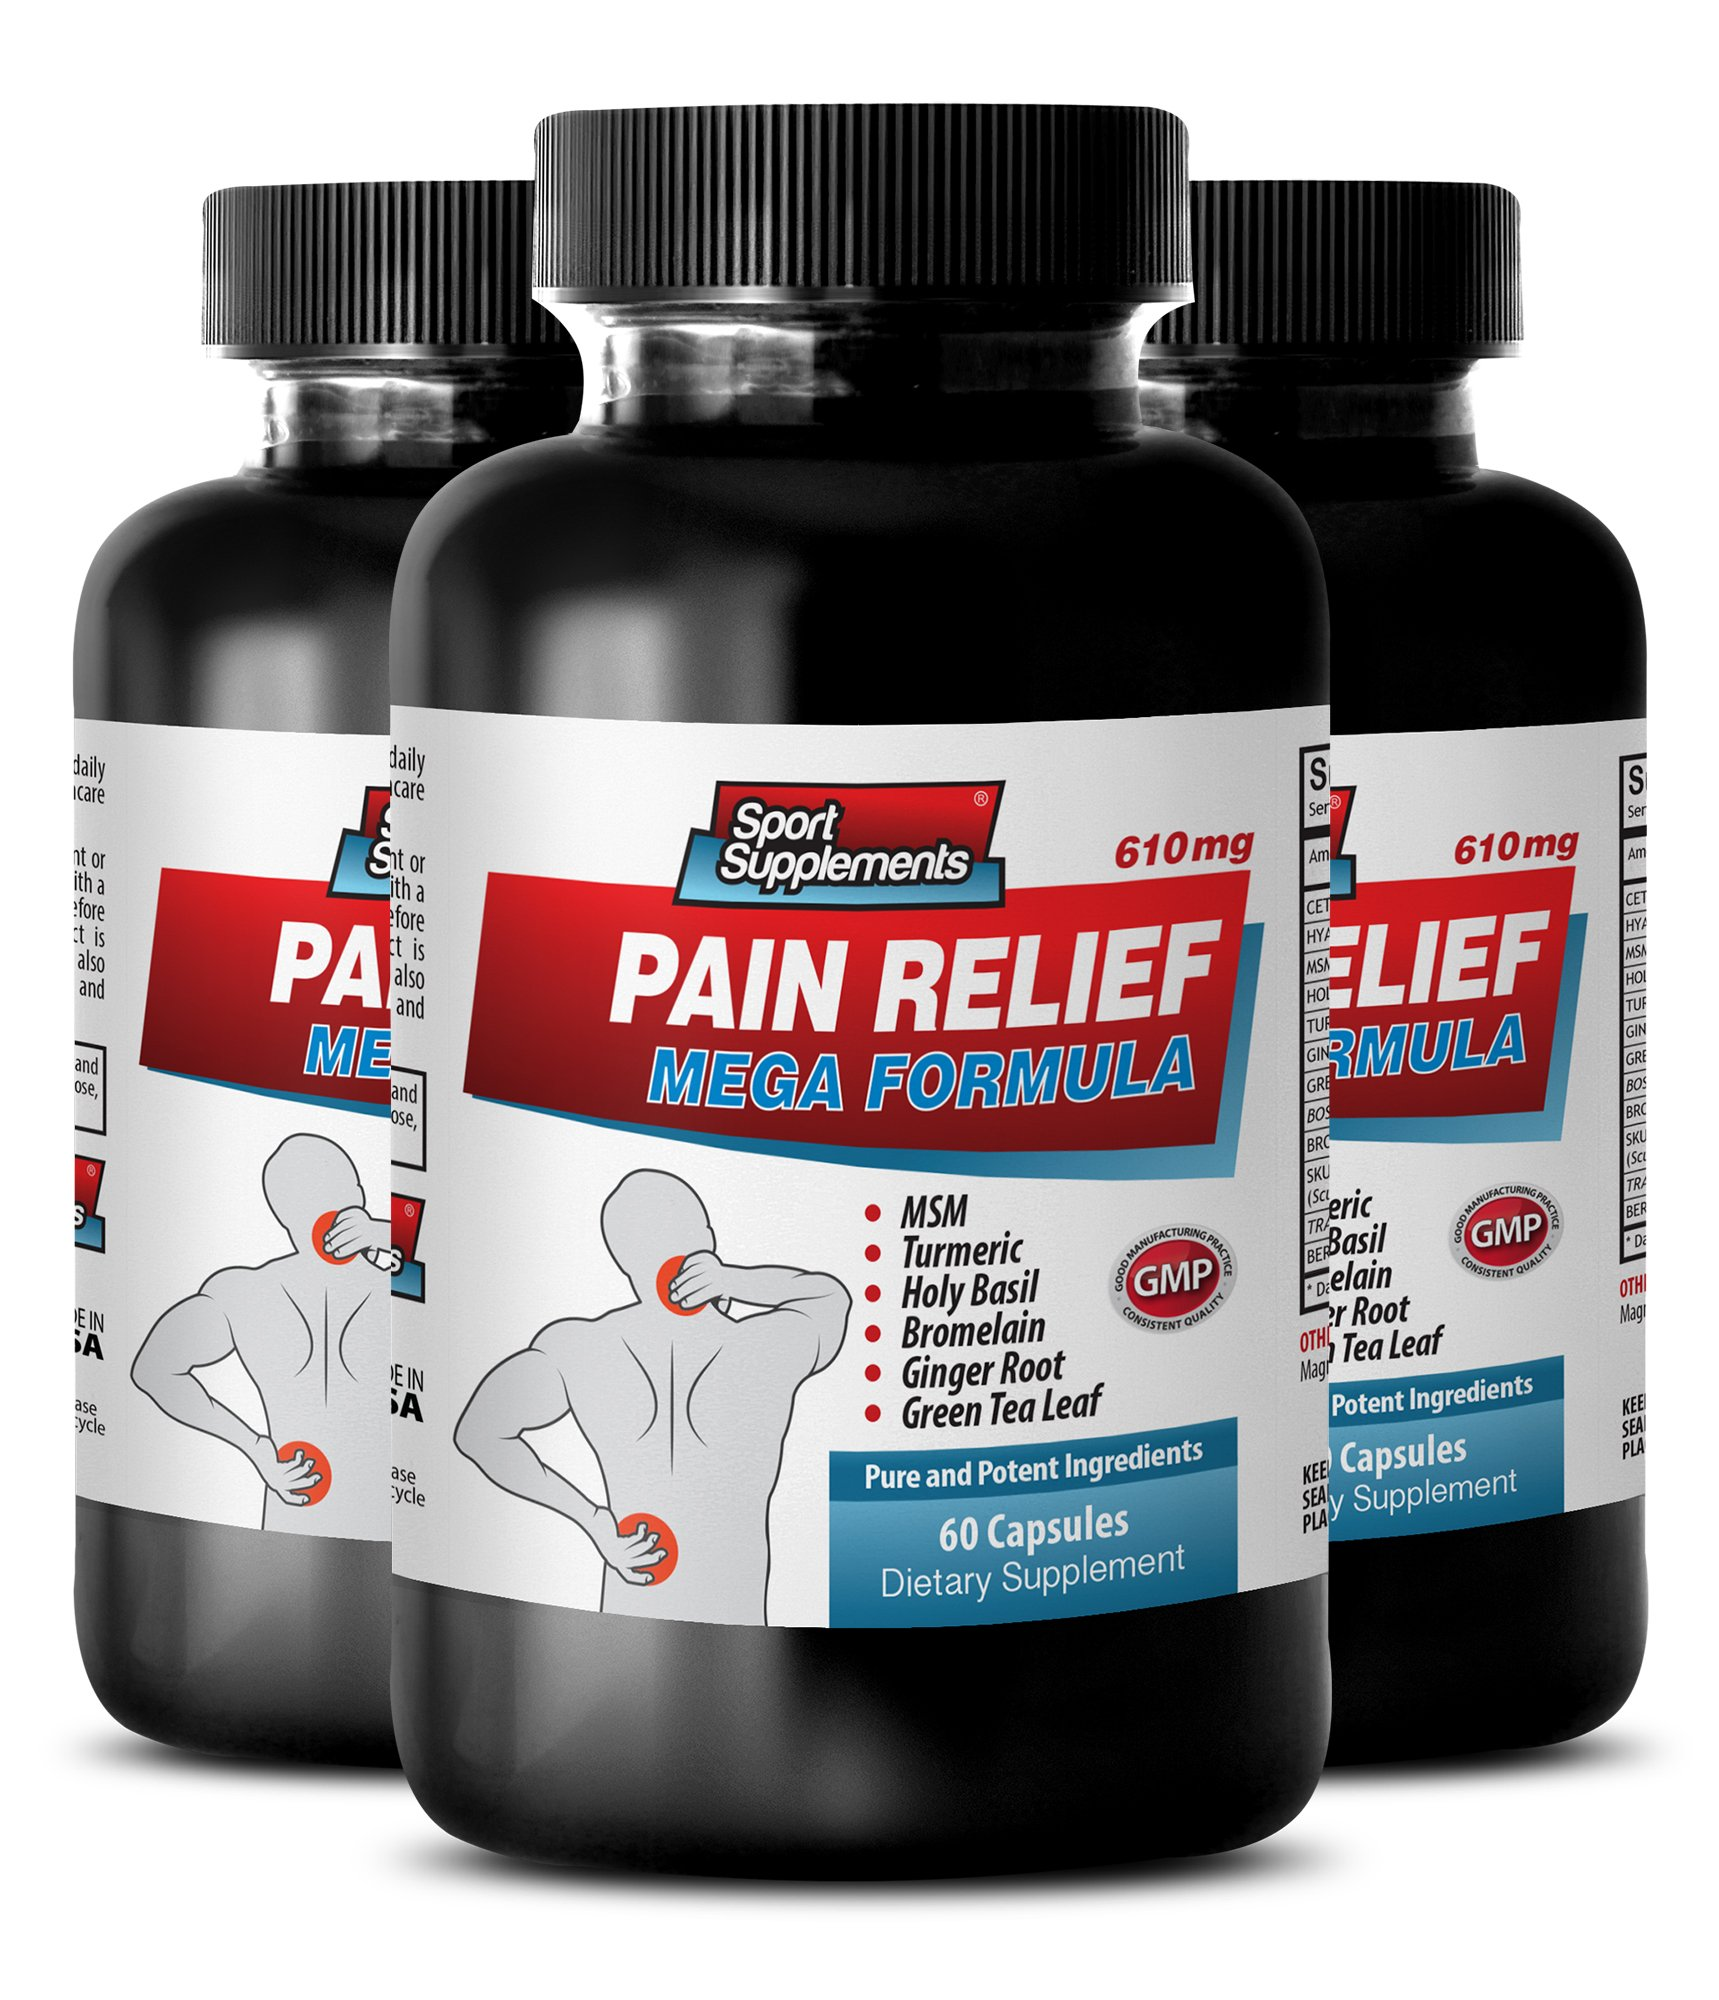 relief pain - natural - PAIN RELIEF MEGA FORMULA - 610MG - green tea leaf extract - 3 Bottle (180 Capsules)